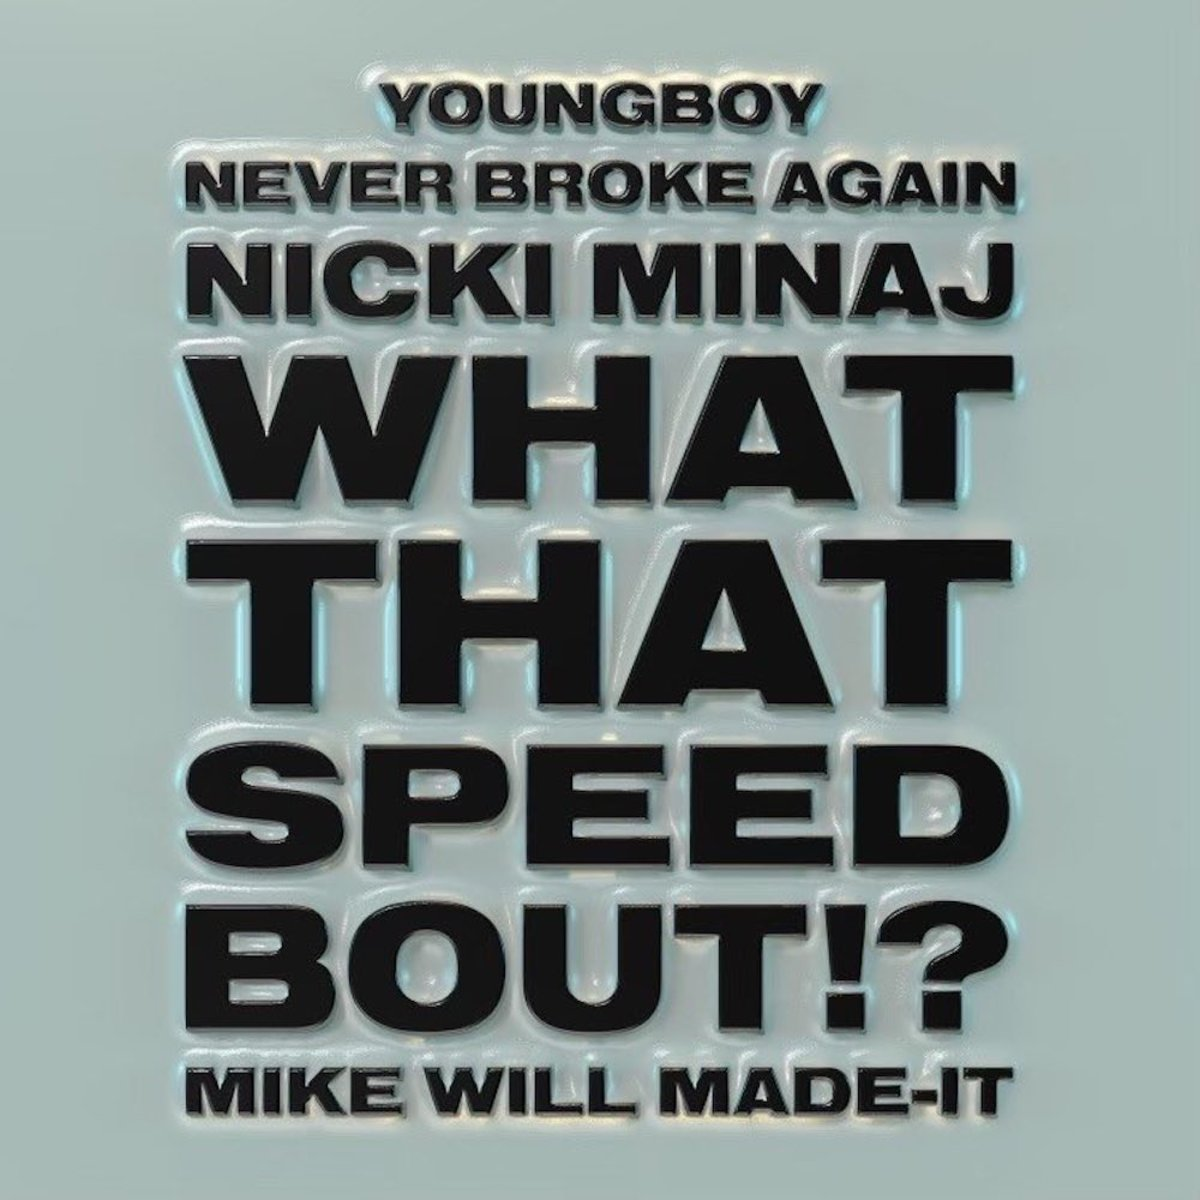 """Nicki Minaj and YoungBoy Never Broke Again Connect on """"What That Speed Bout!?"""""""